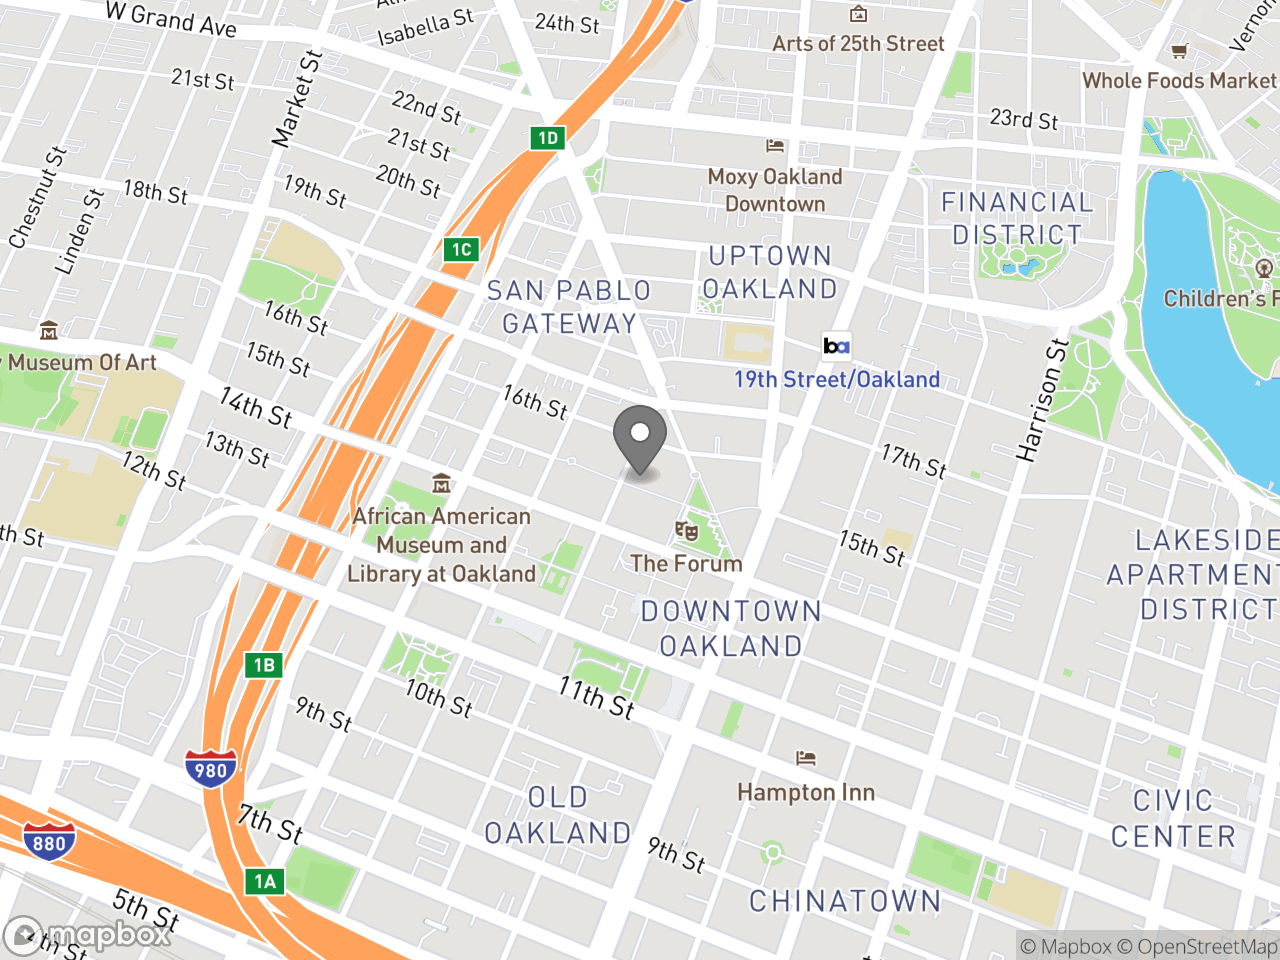 Map location for Oakland Business Assistance Center, located at 270 Frank H. Ogawa Plaza  in Oakland, CA 94612